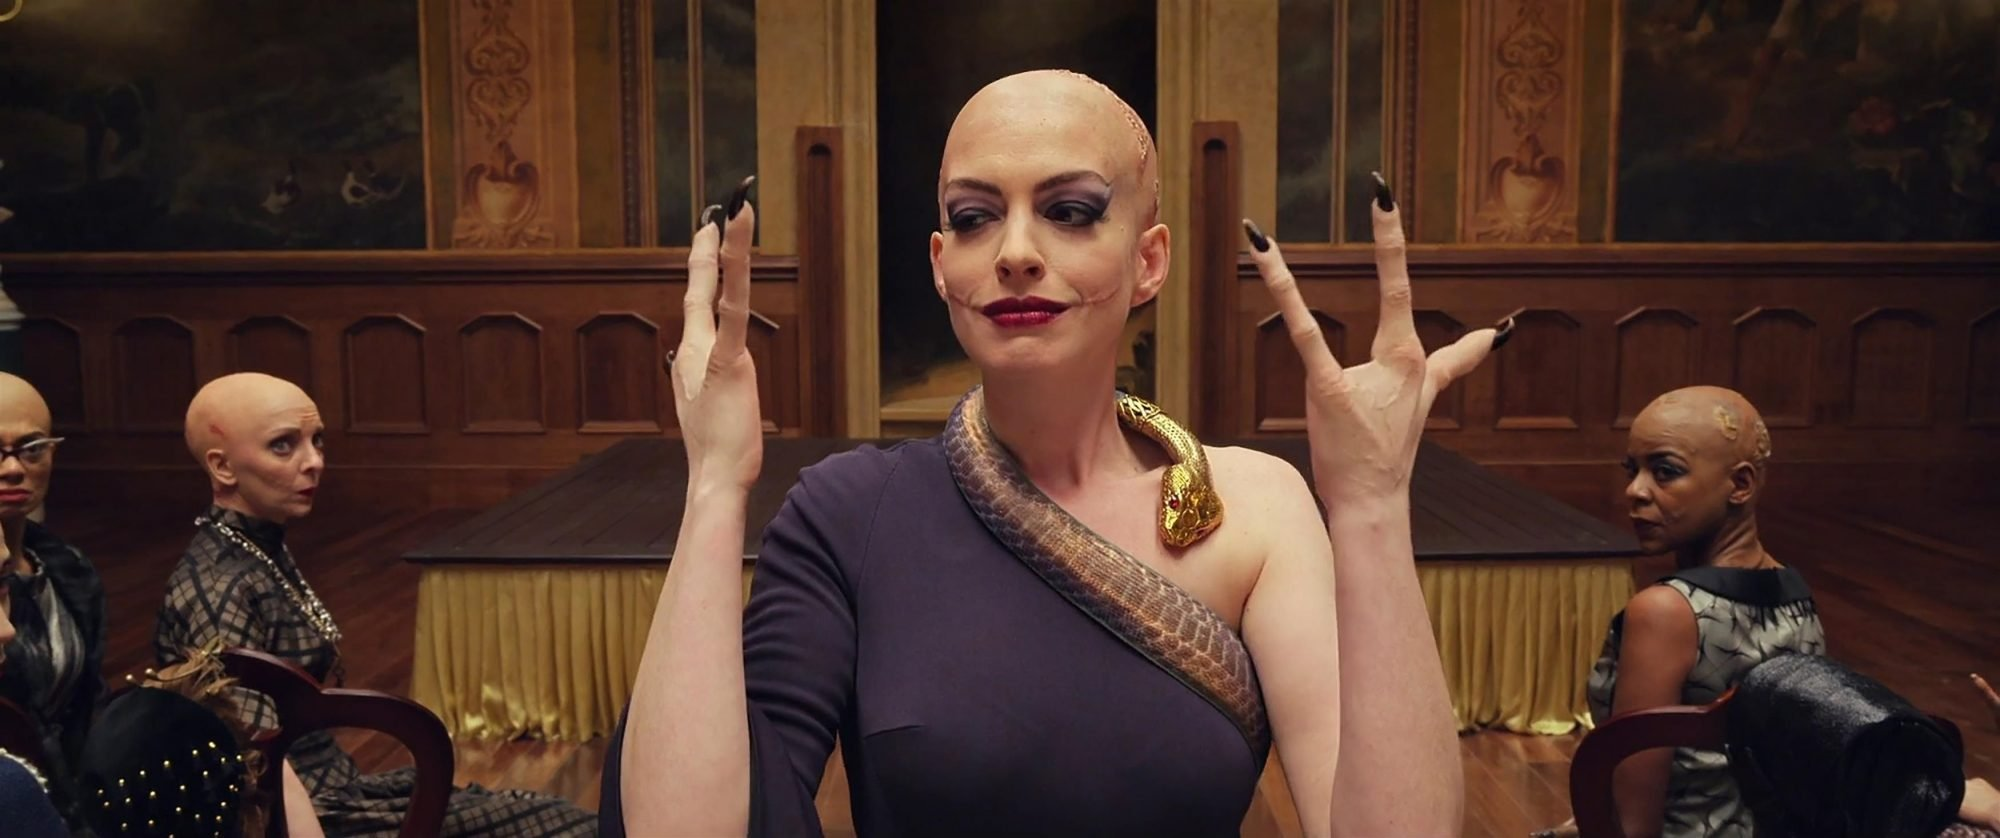 picture of anne hathaway as the grand high witch with three fingers on her hand